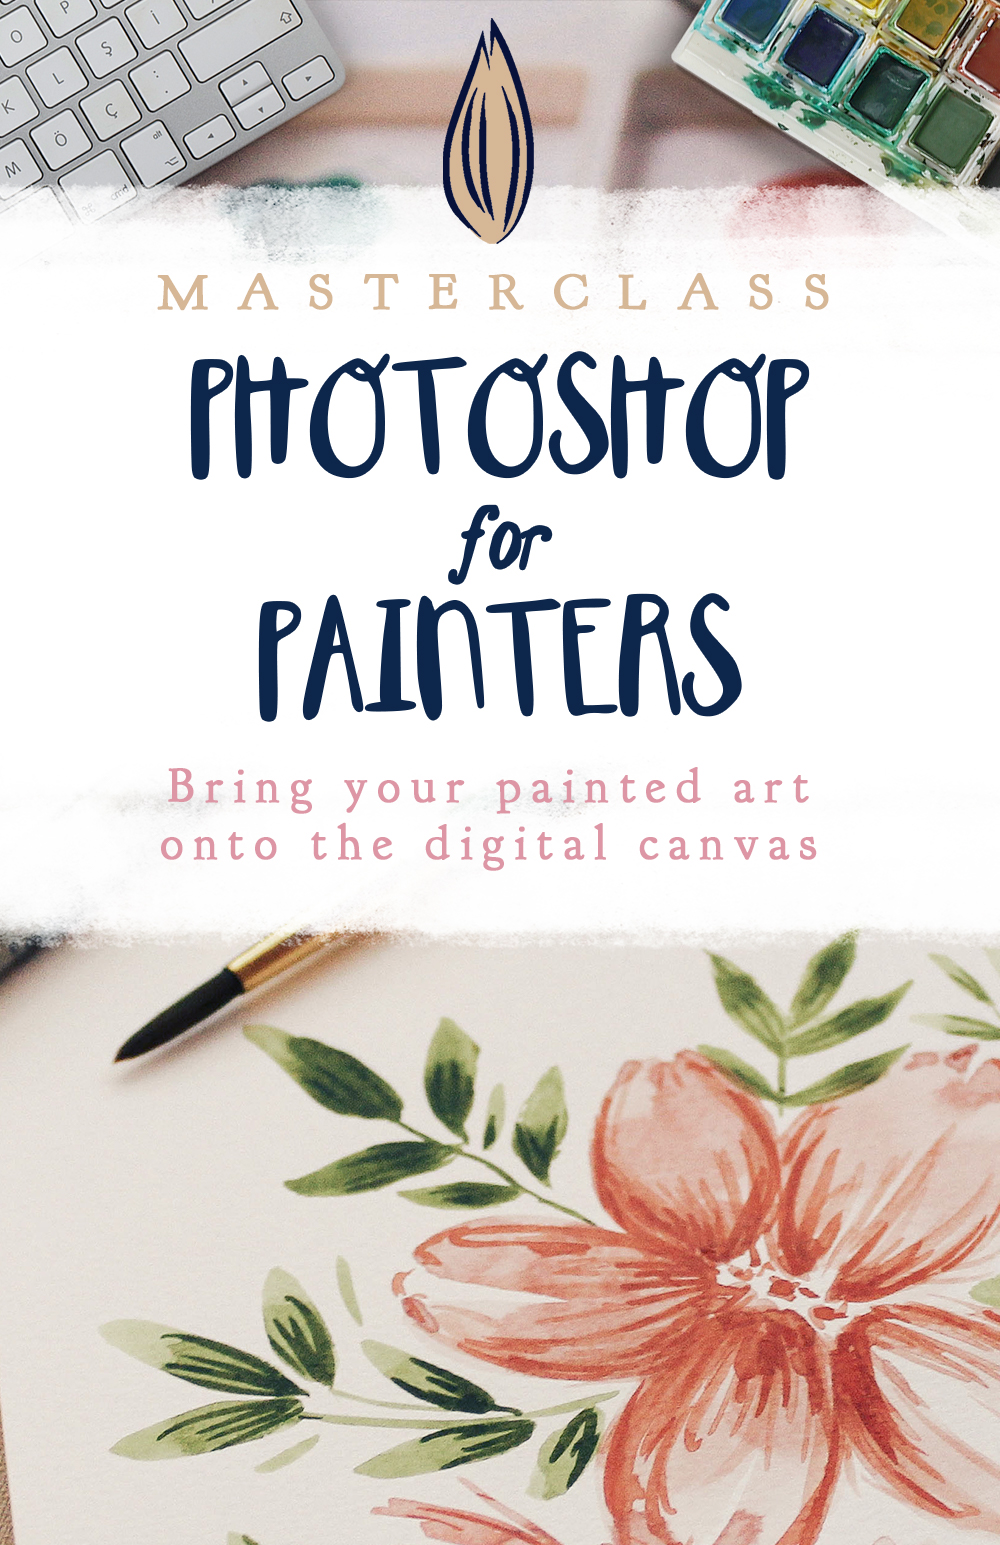 Photoshop for Painters: bring your painted art onto the digital canvas, a masterclass